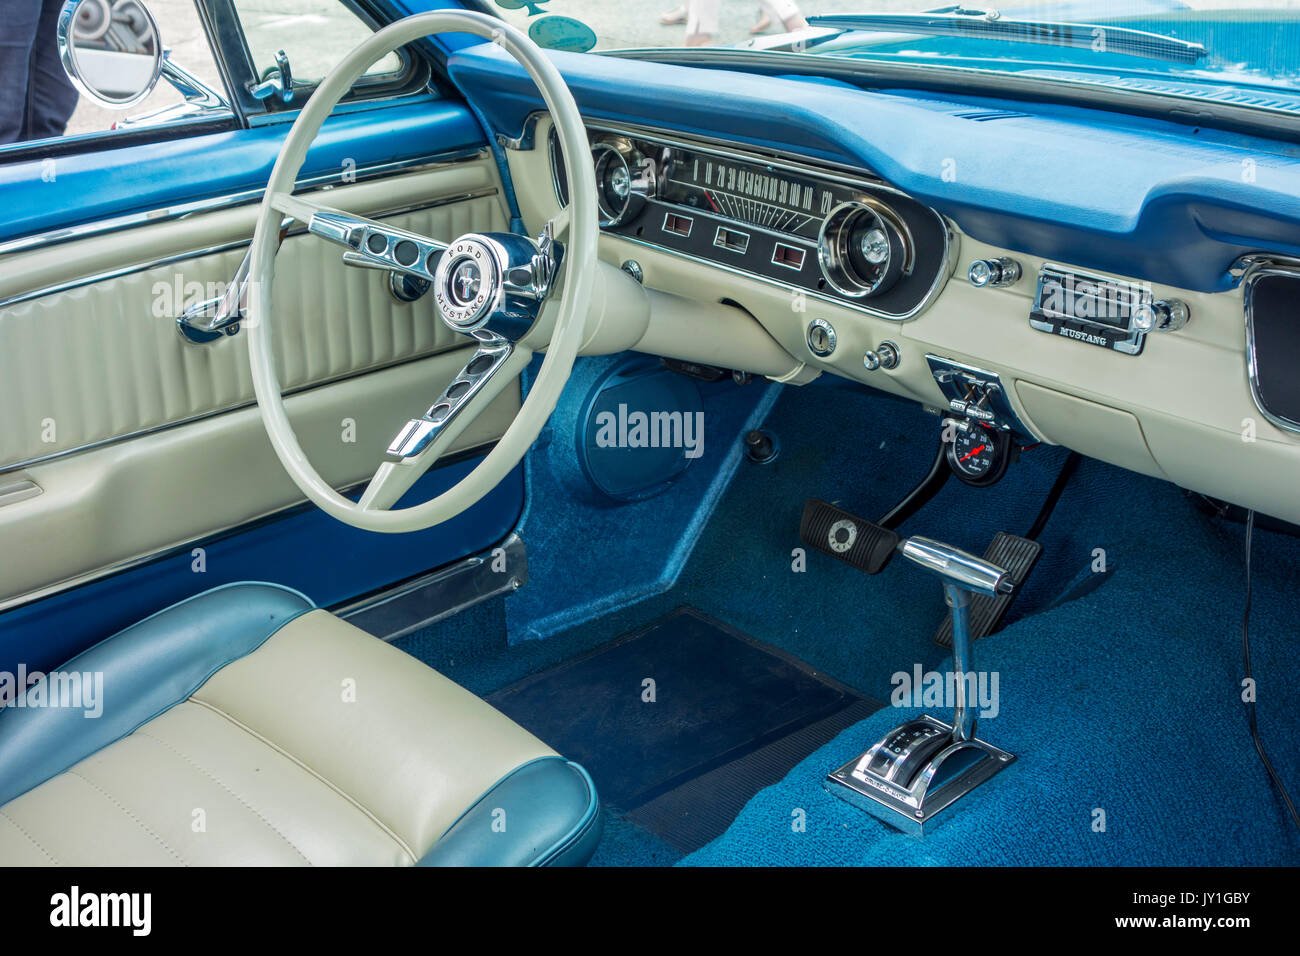 Vintage 1965 Ford Mustang Interior Showing Steering Wheel And Stock